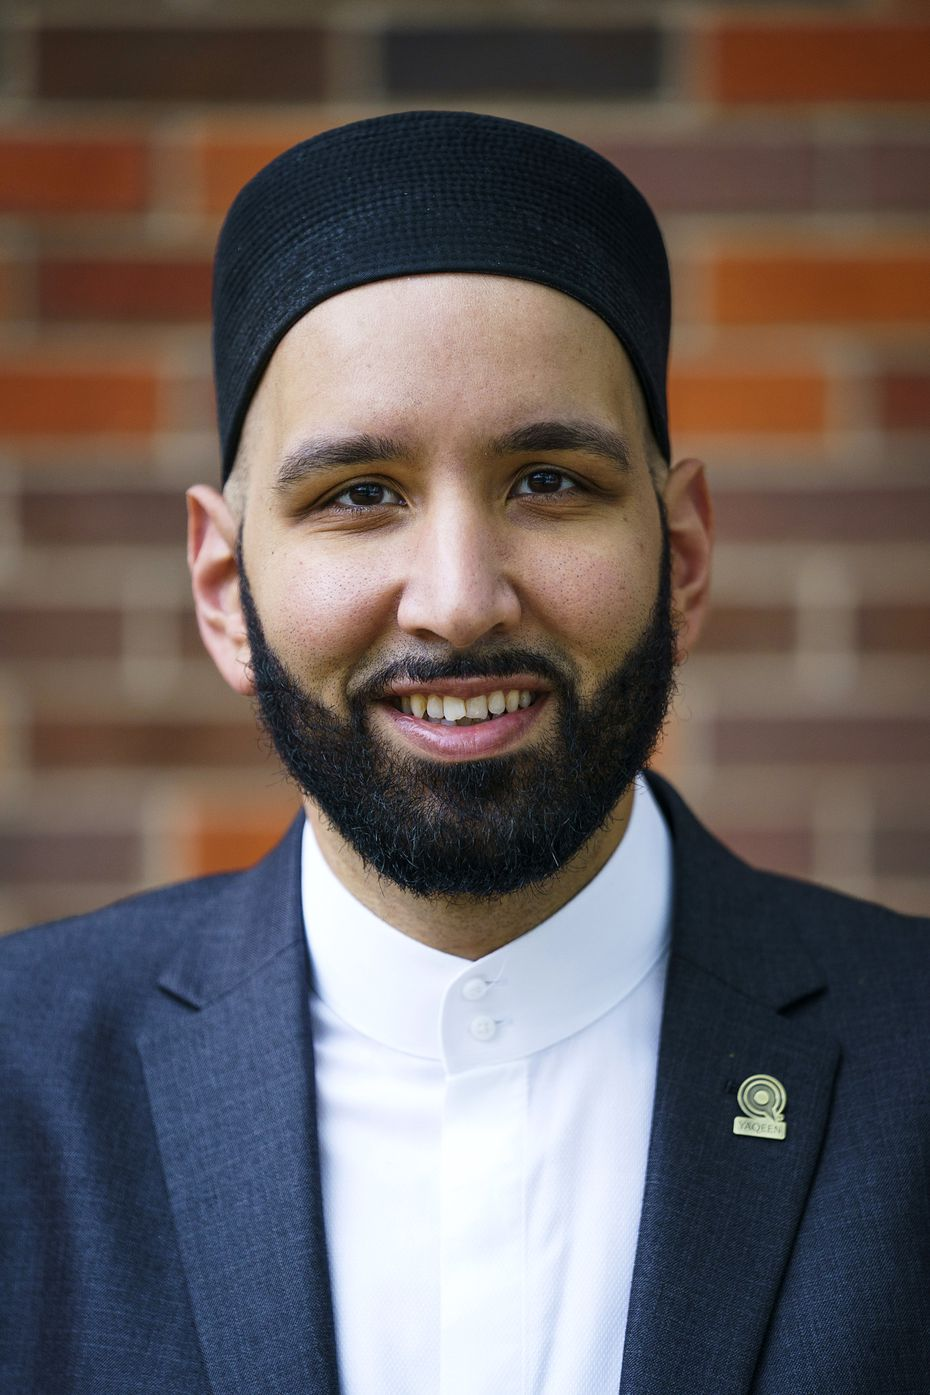 Iman Omar Suleiman photographed at Wilshire Baptist Church on Friday, March 27, 2020, in Dallas. (